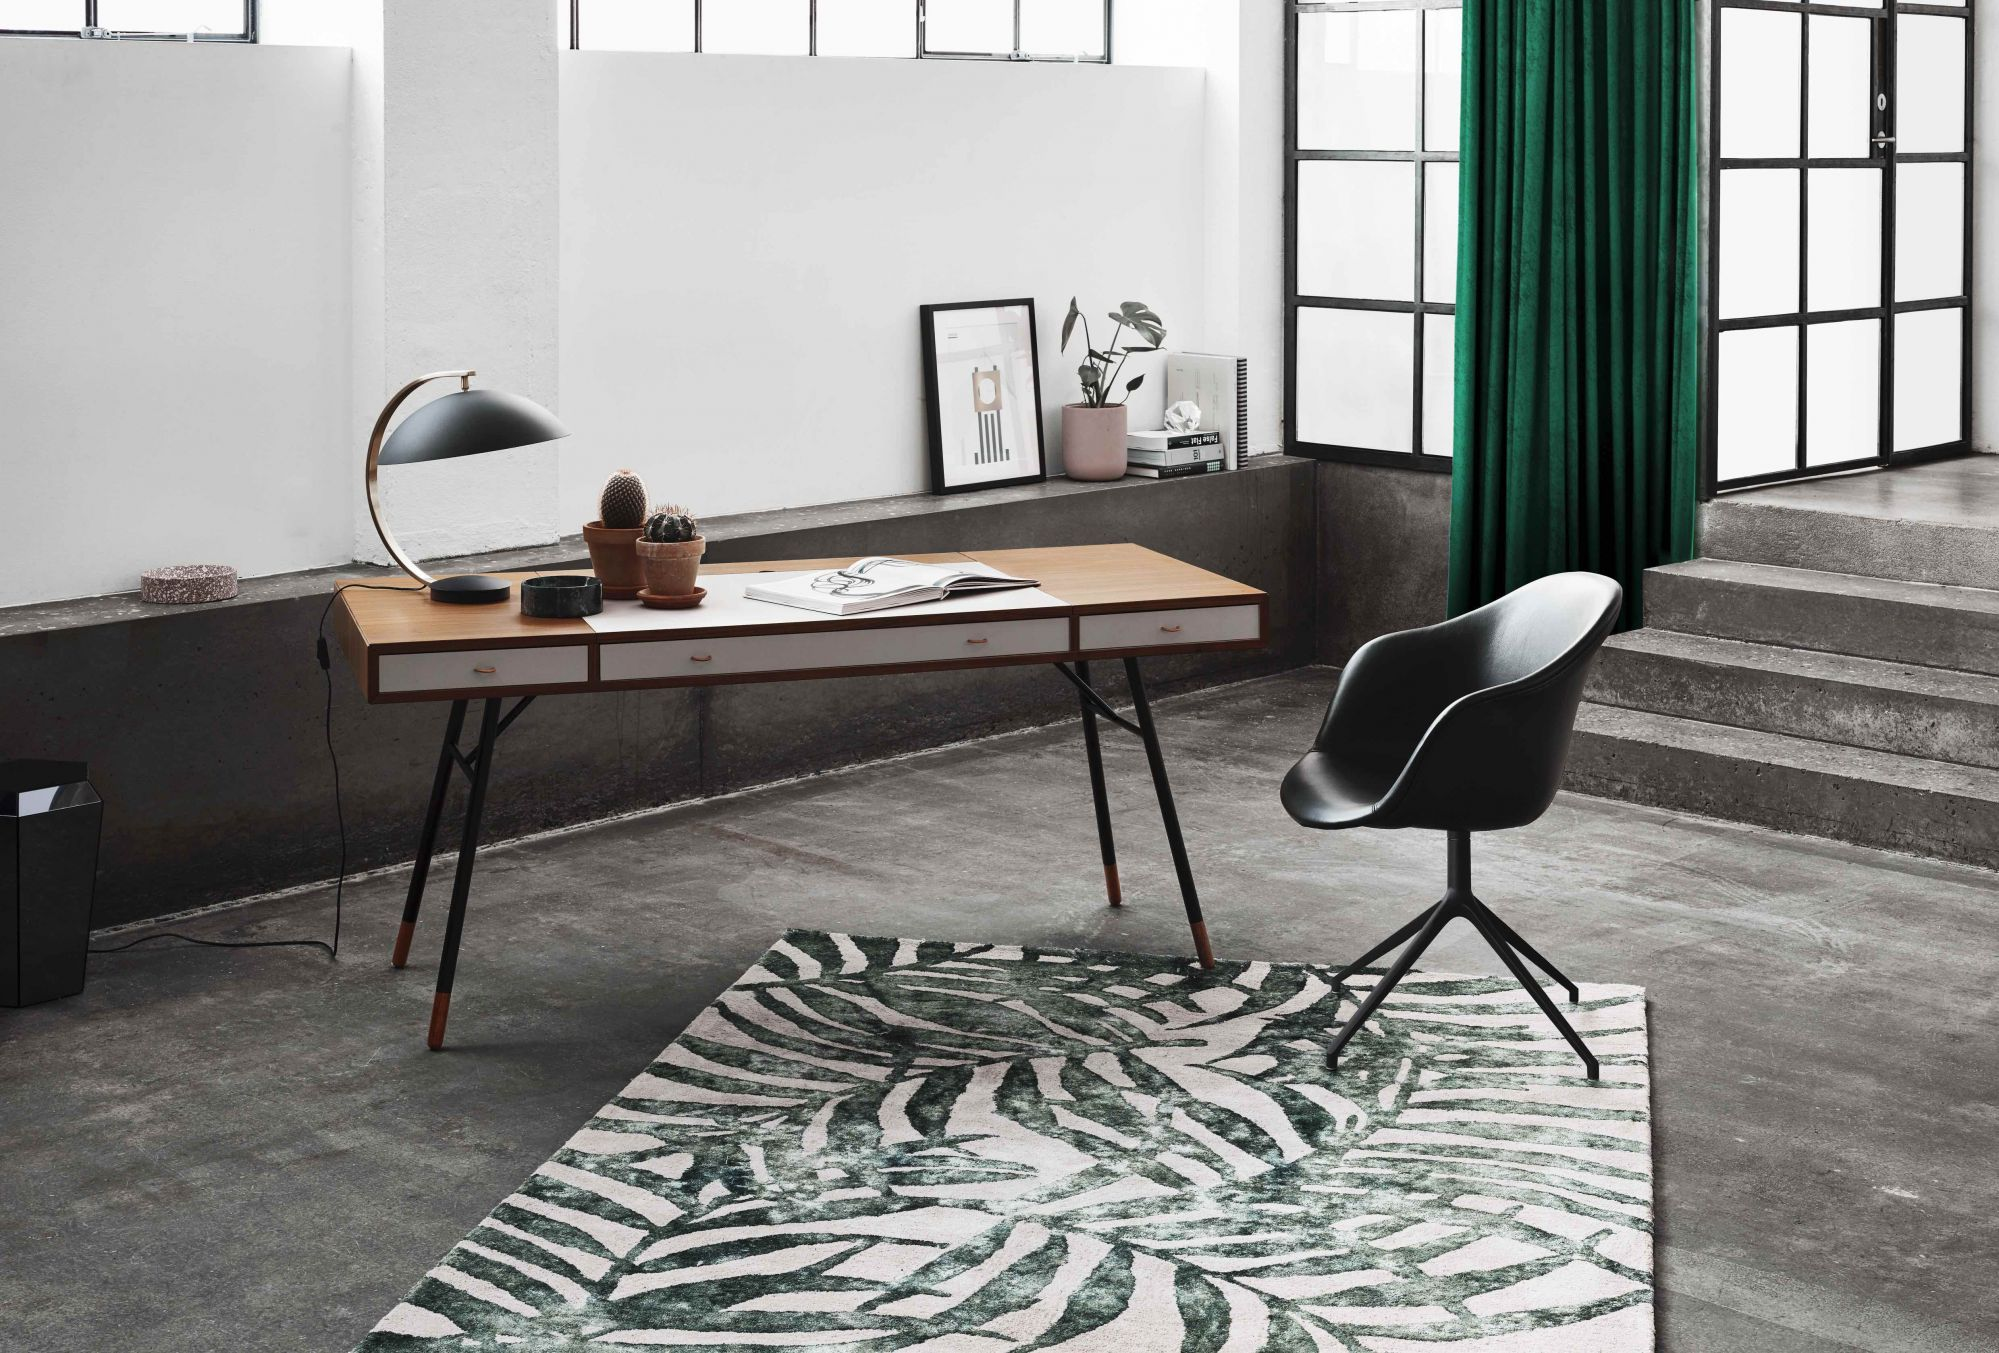 Nordic Chic: 7 Scandinavian-Style Desks for Your Home Office